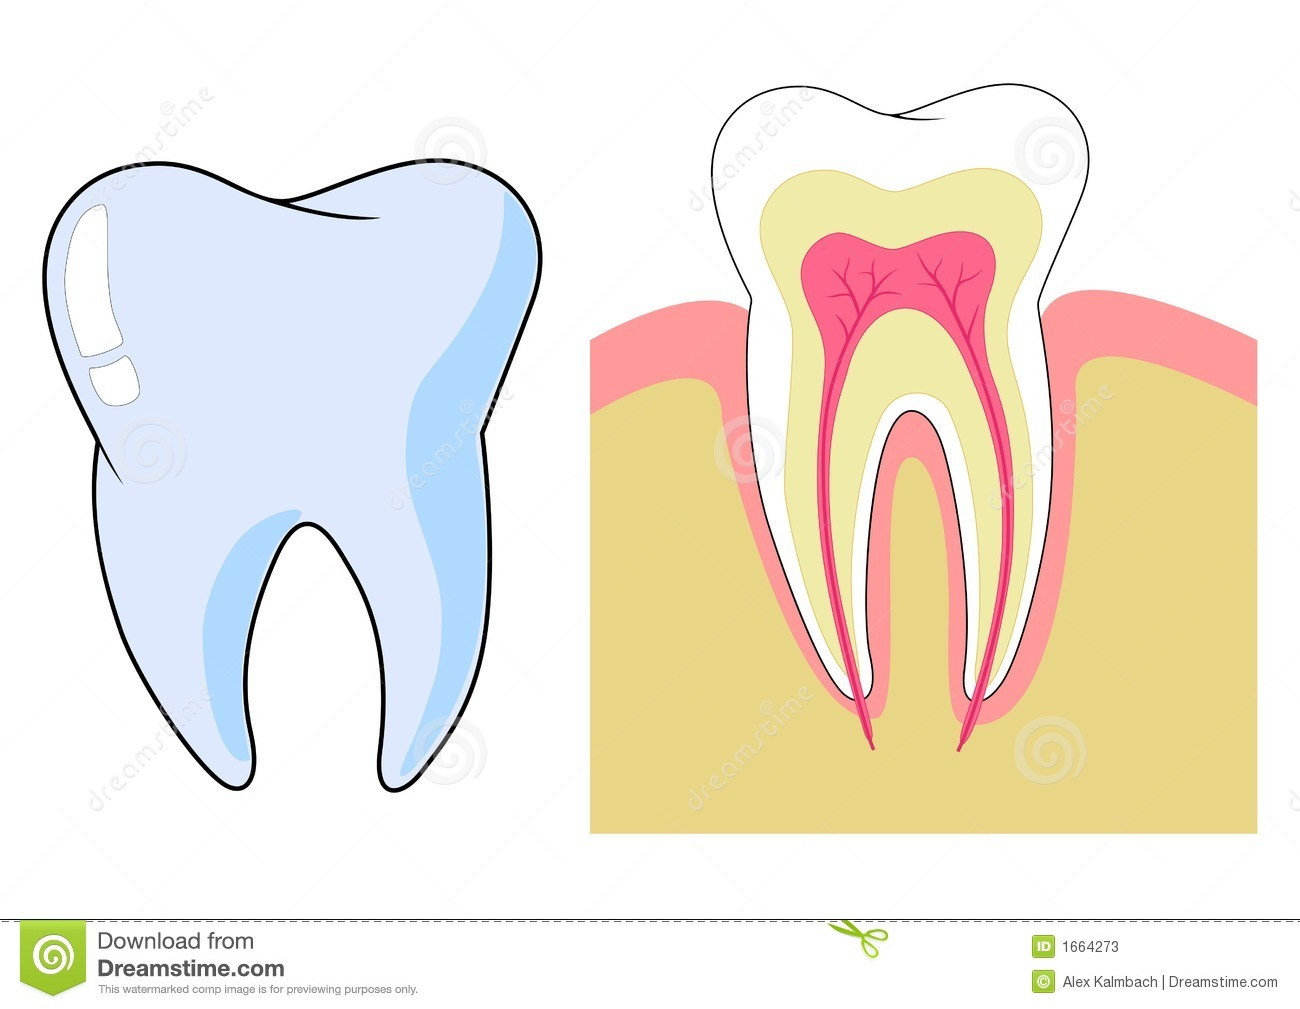 Tooth stock vector. Illustration of care, anatomy, anatomical - 1664273